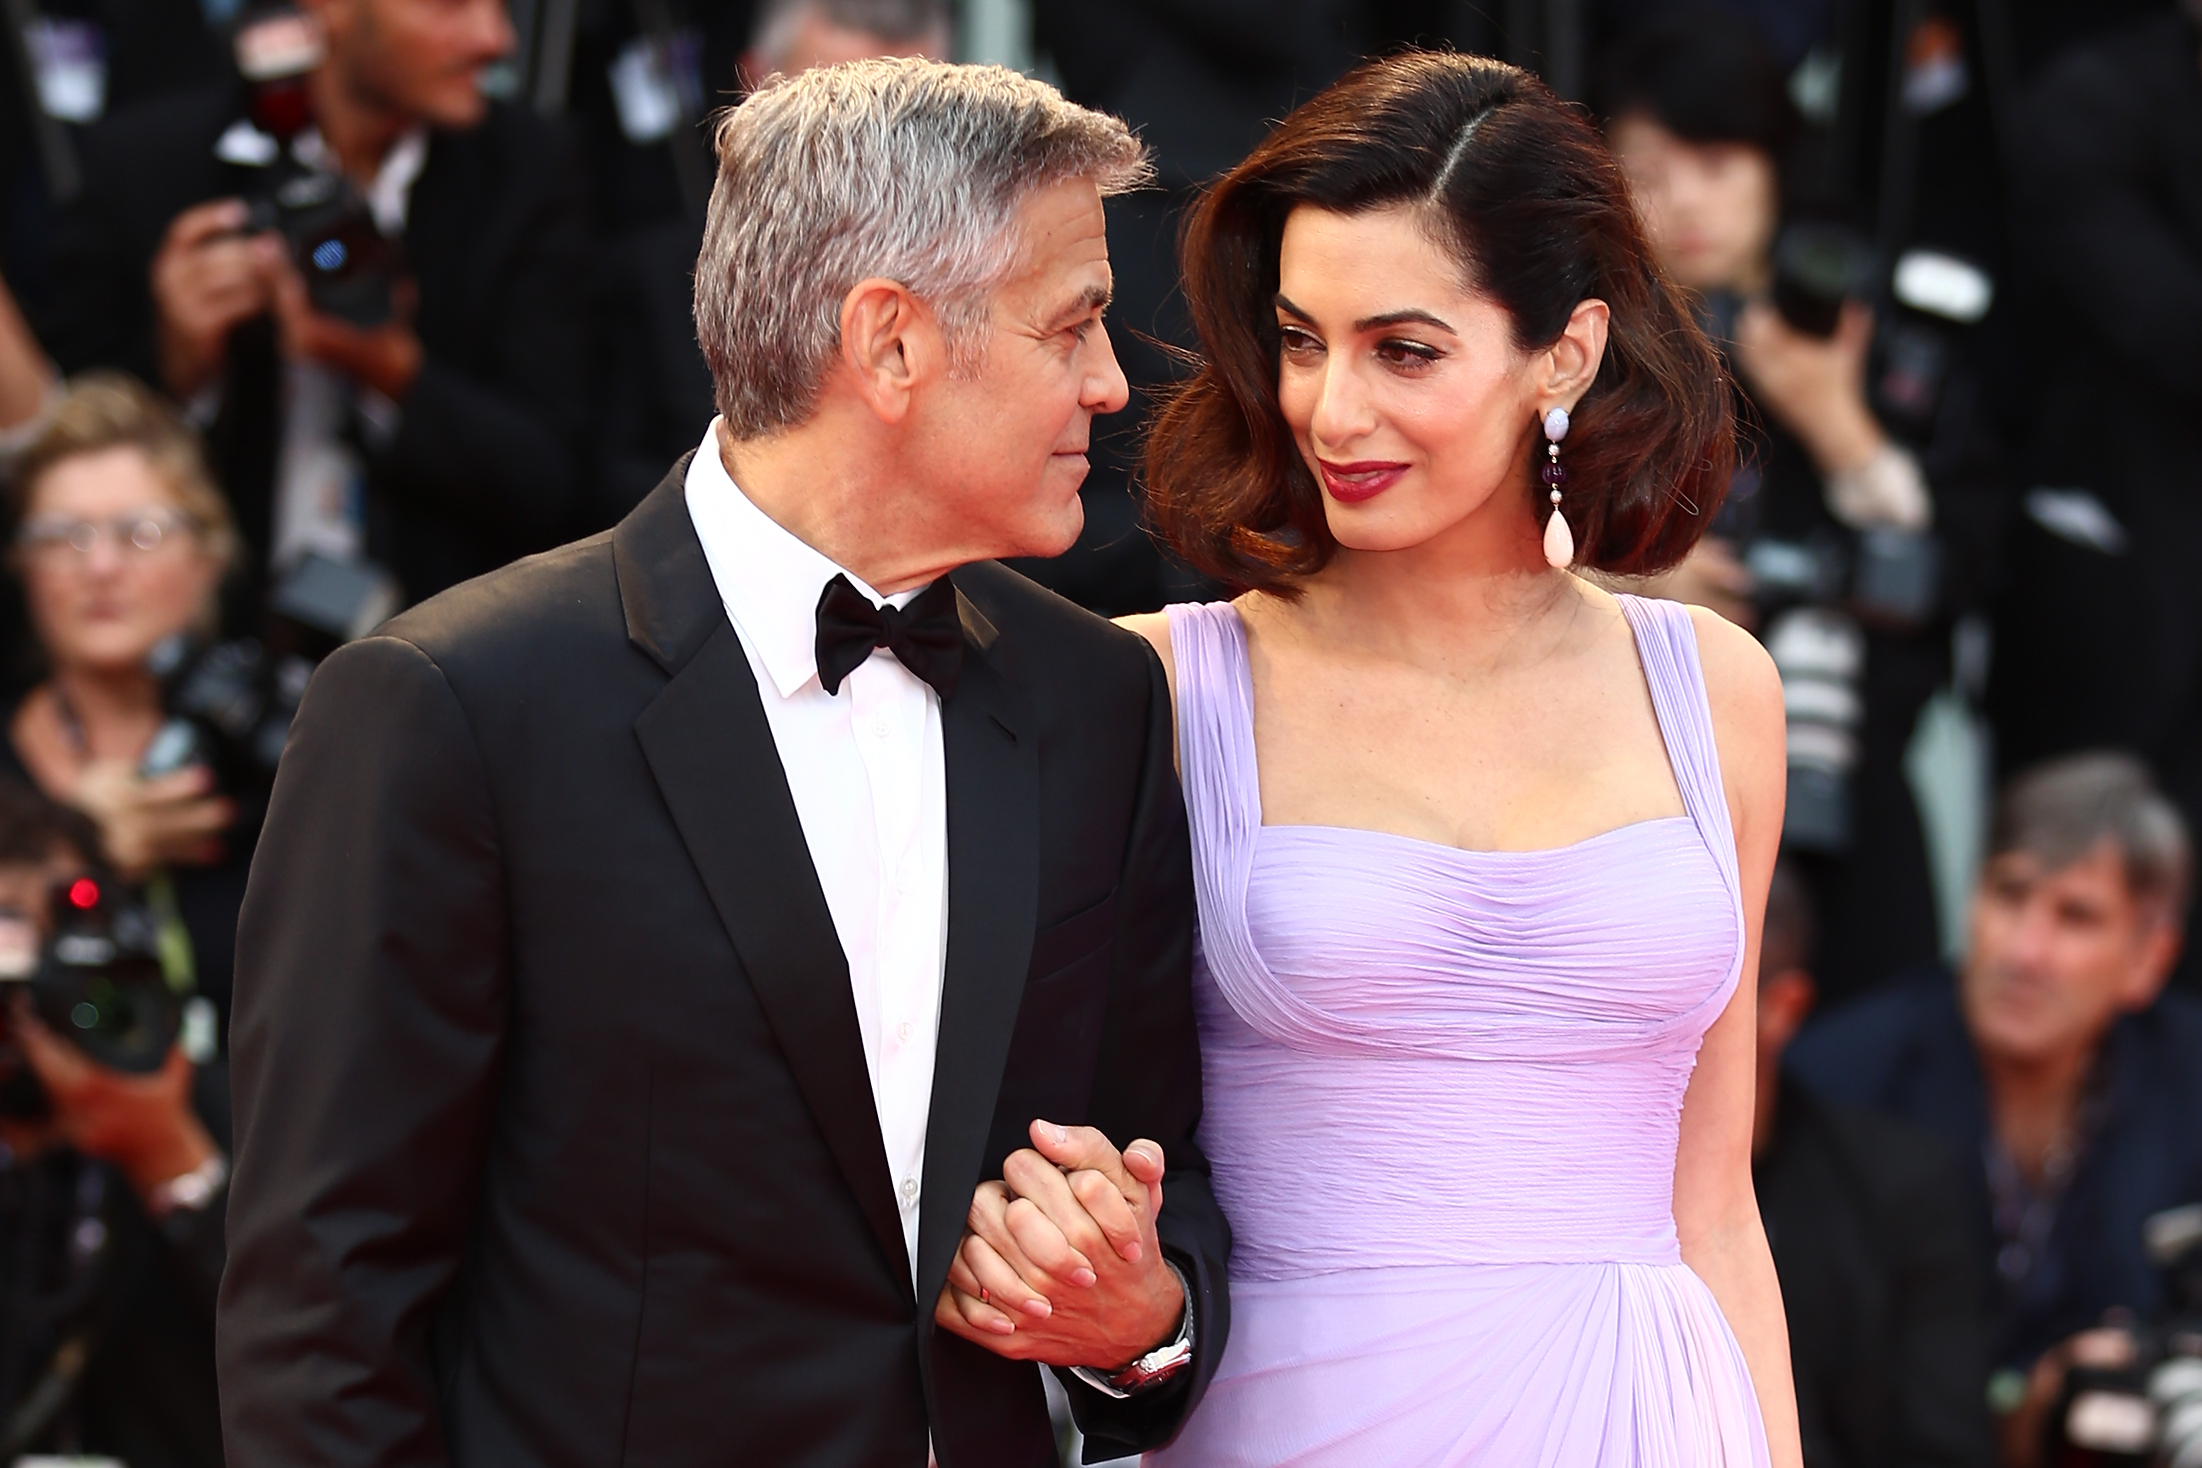 George and Amal Clooney, Matt Damon with Luciana Barroso, Julianne Moore and Chiara Ferragni attend the red carpet at the '74th Venice Film Festival' in Venice, Italy. <P> Pictured: George Clooney, Amal Clooney <B>Ref: SPL1567449  020917  </B><BR/> Picture by: Pierre Teyssot / Splash News<BR/> </P><P> <B>Splash News and Pictures</B><BR/> Los Angeles:310-821-2666<BR/> New York:212-619-2666<BR/> London:870-934-2666<BR/> <span id=